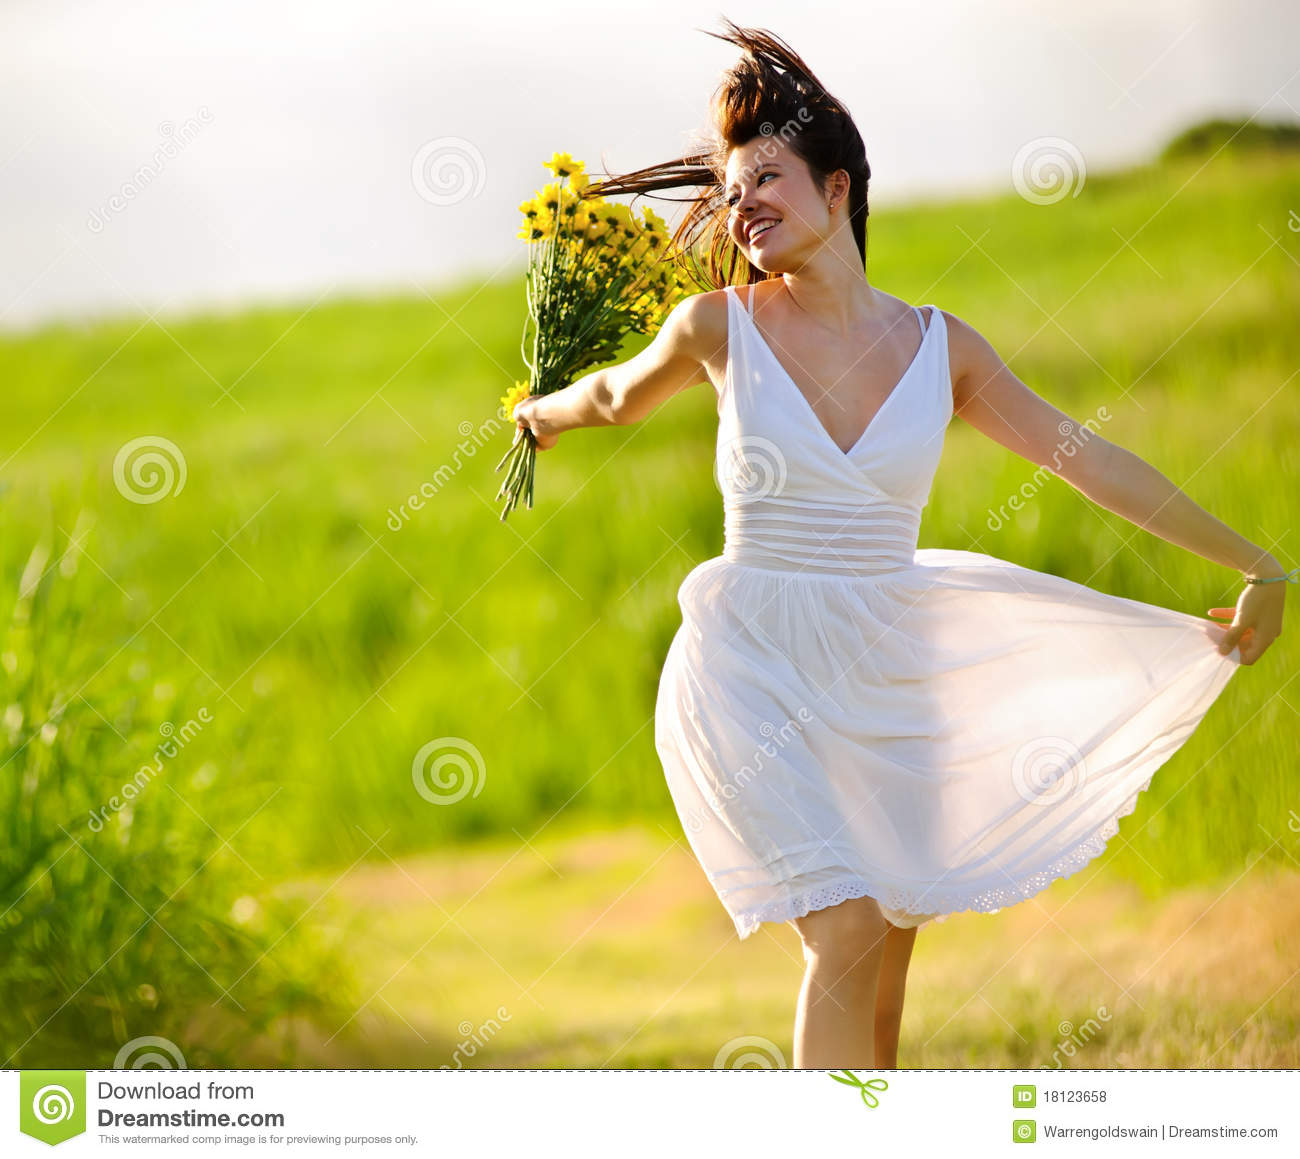 adorable-happy-summer-woman-skipping-181